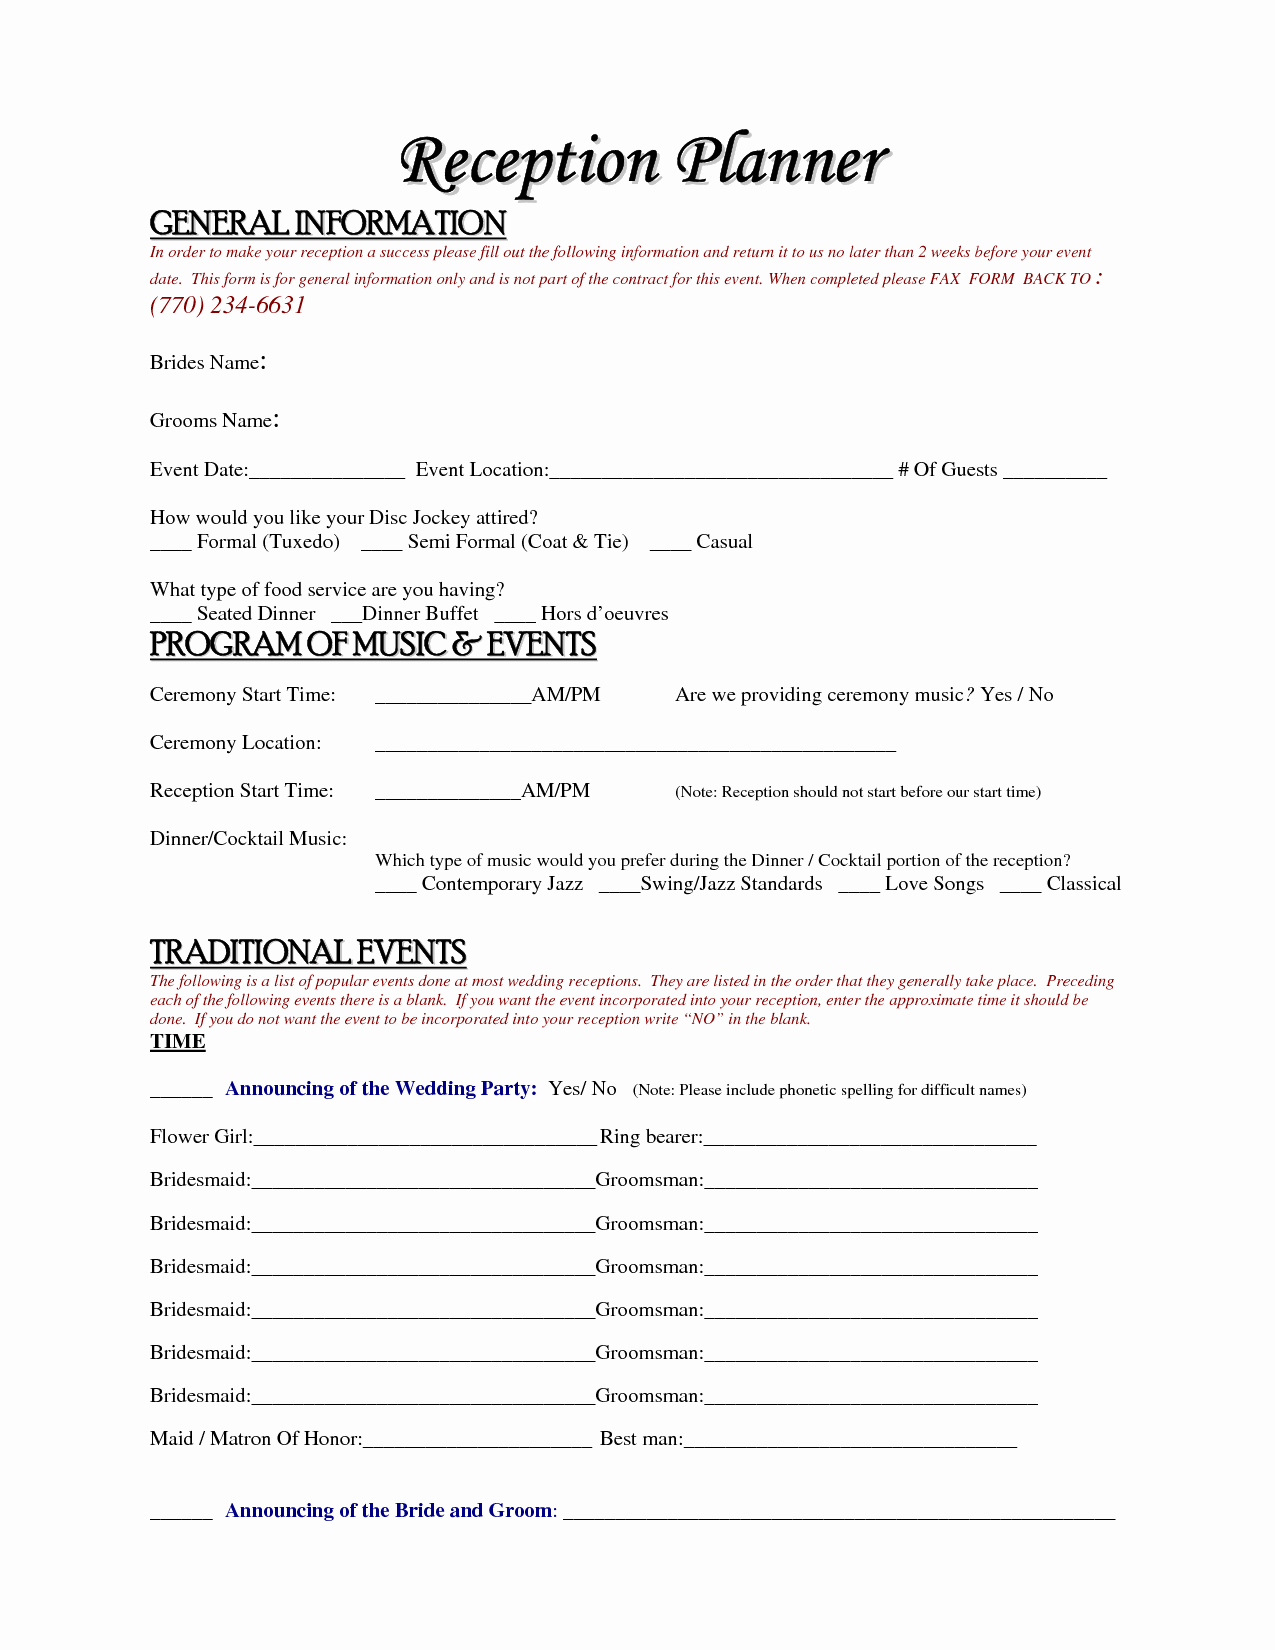 Event Planning Contract Template Awesome Pin by Yesidomariage On La Voiture Des Mariés In 2019